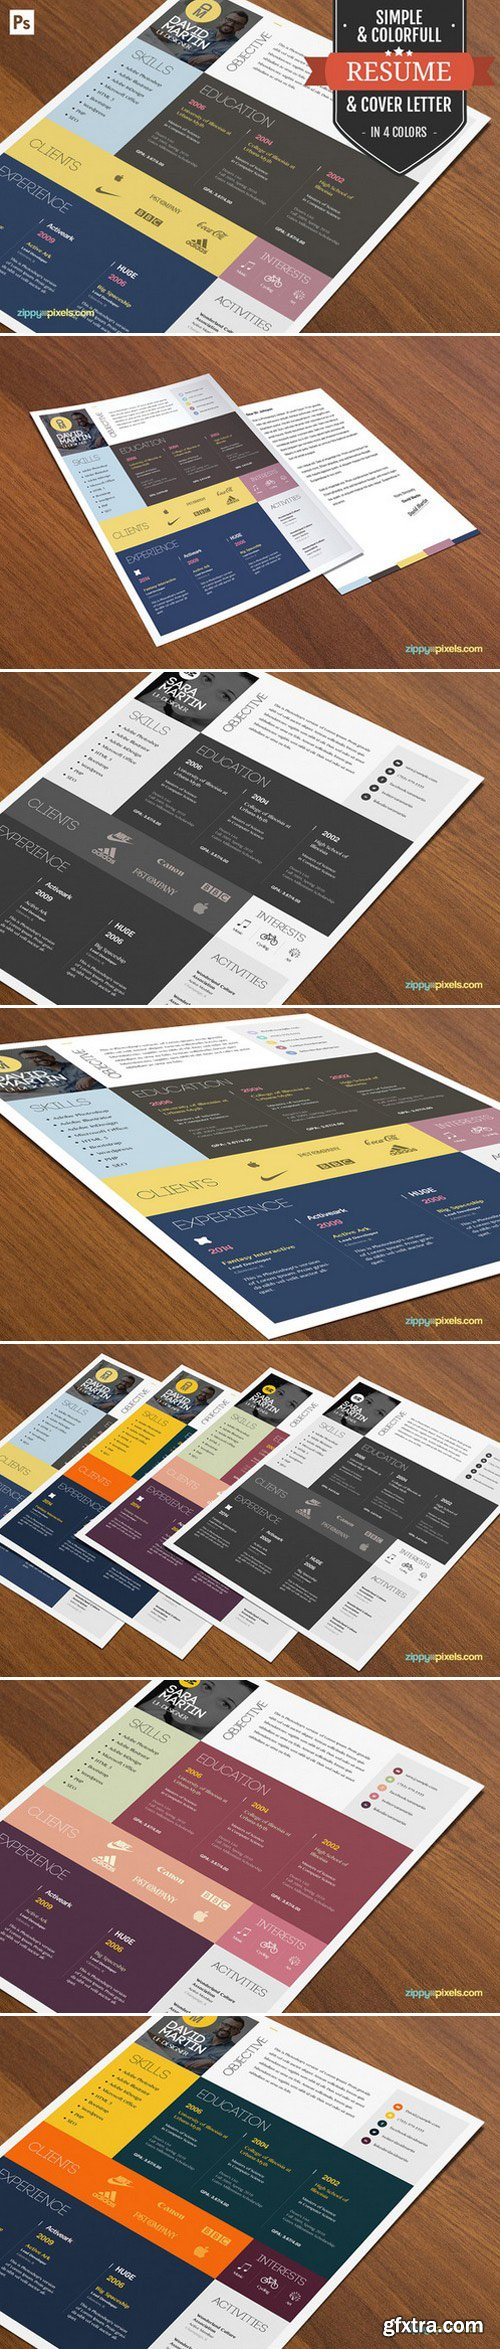 CM - Resume/Cover Letter Template Layout 394480